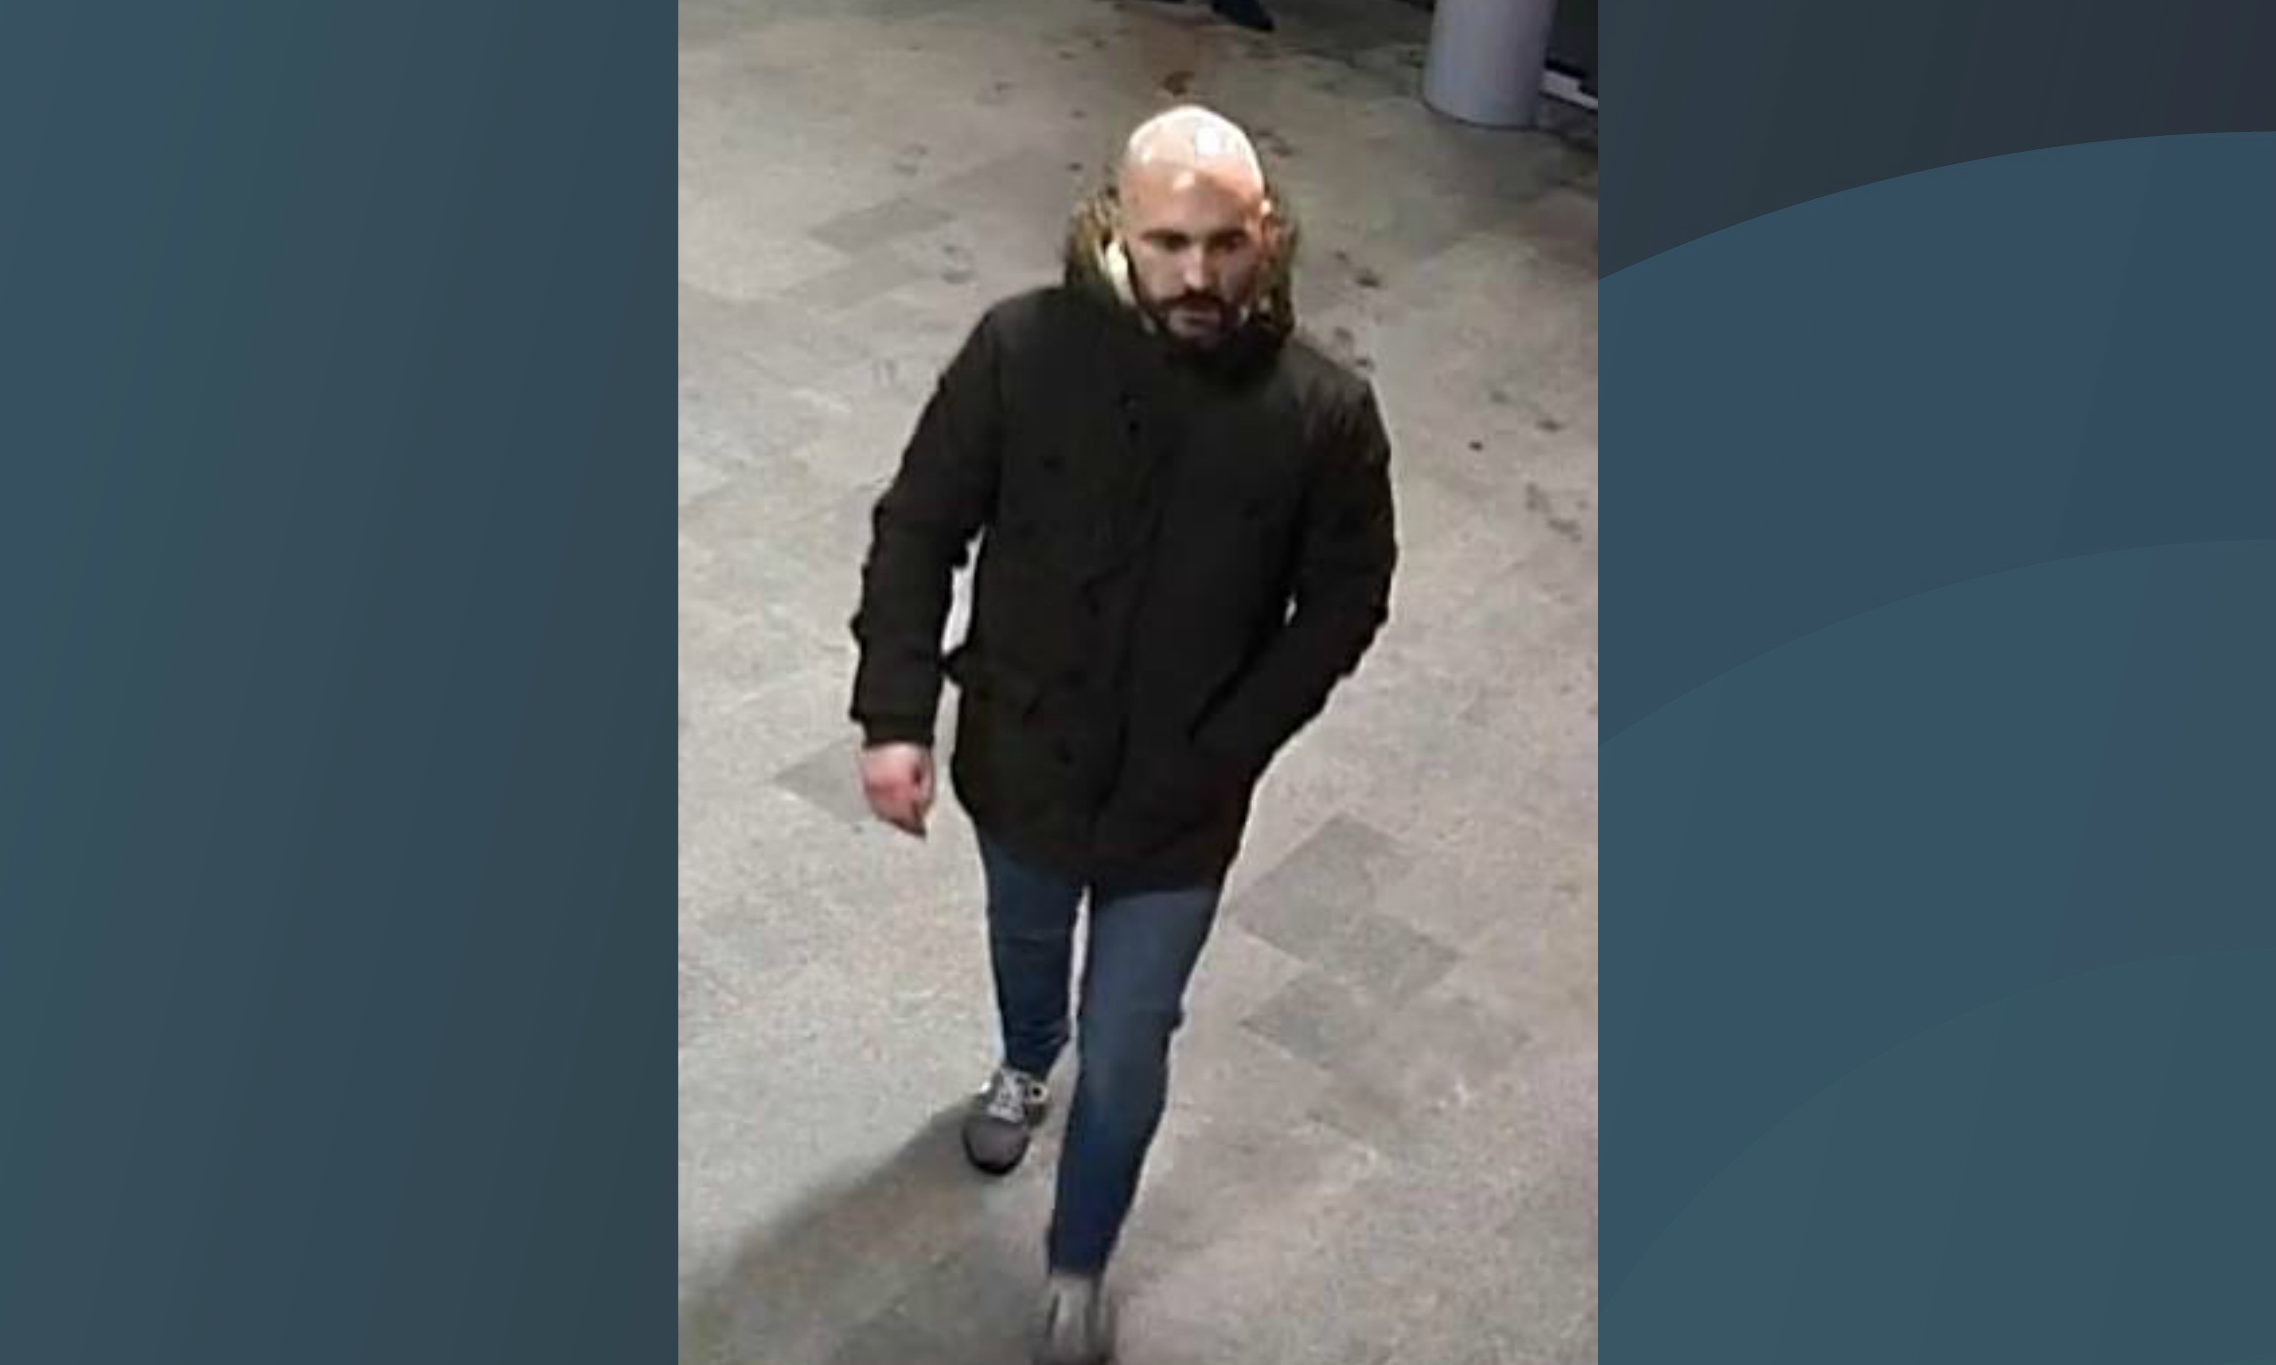 Police investigating an assault on a train conductor on December 2 are seeking a man they believe can help their inquiry.